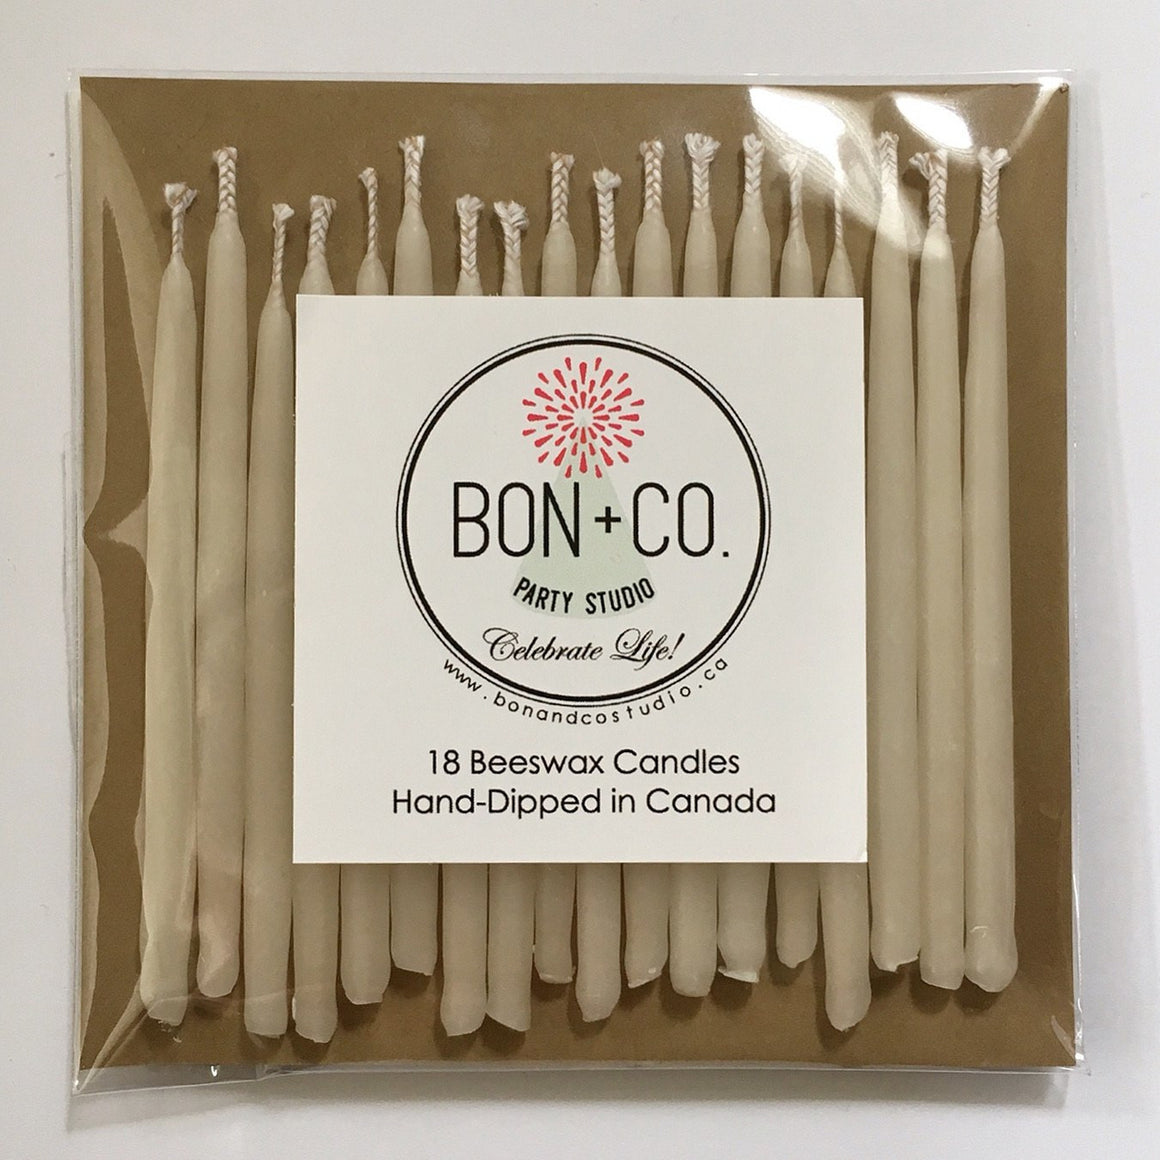 "CANDLES 3"" BEESWAX - SOLID IVORY, Candles + Sparklers, BON + CO - Bon + Co. Party Studio"